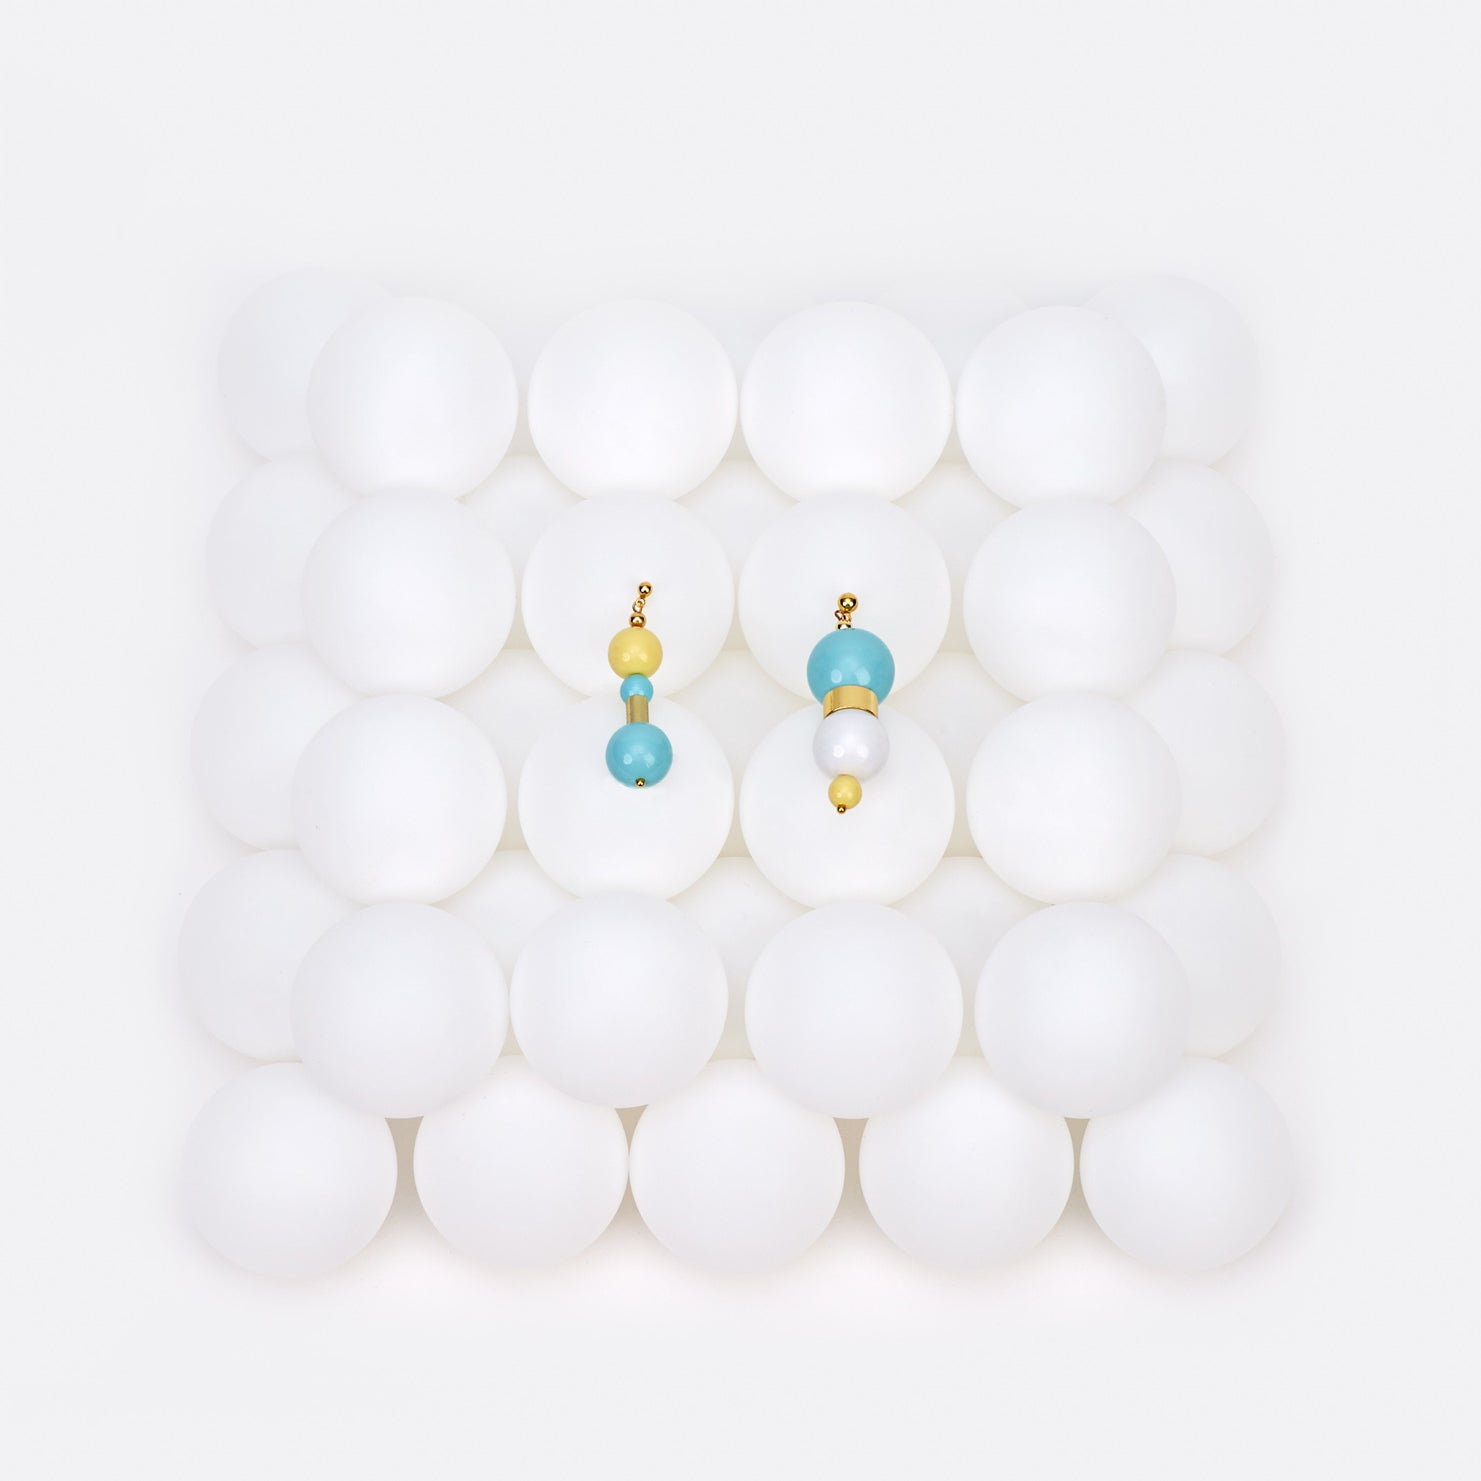 Image of Ice blue lemon bubble gum earrings